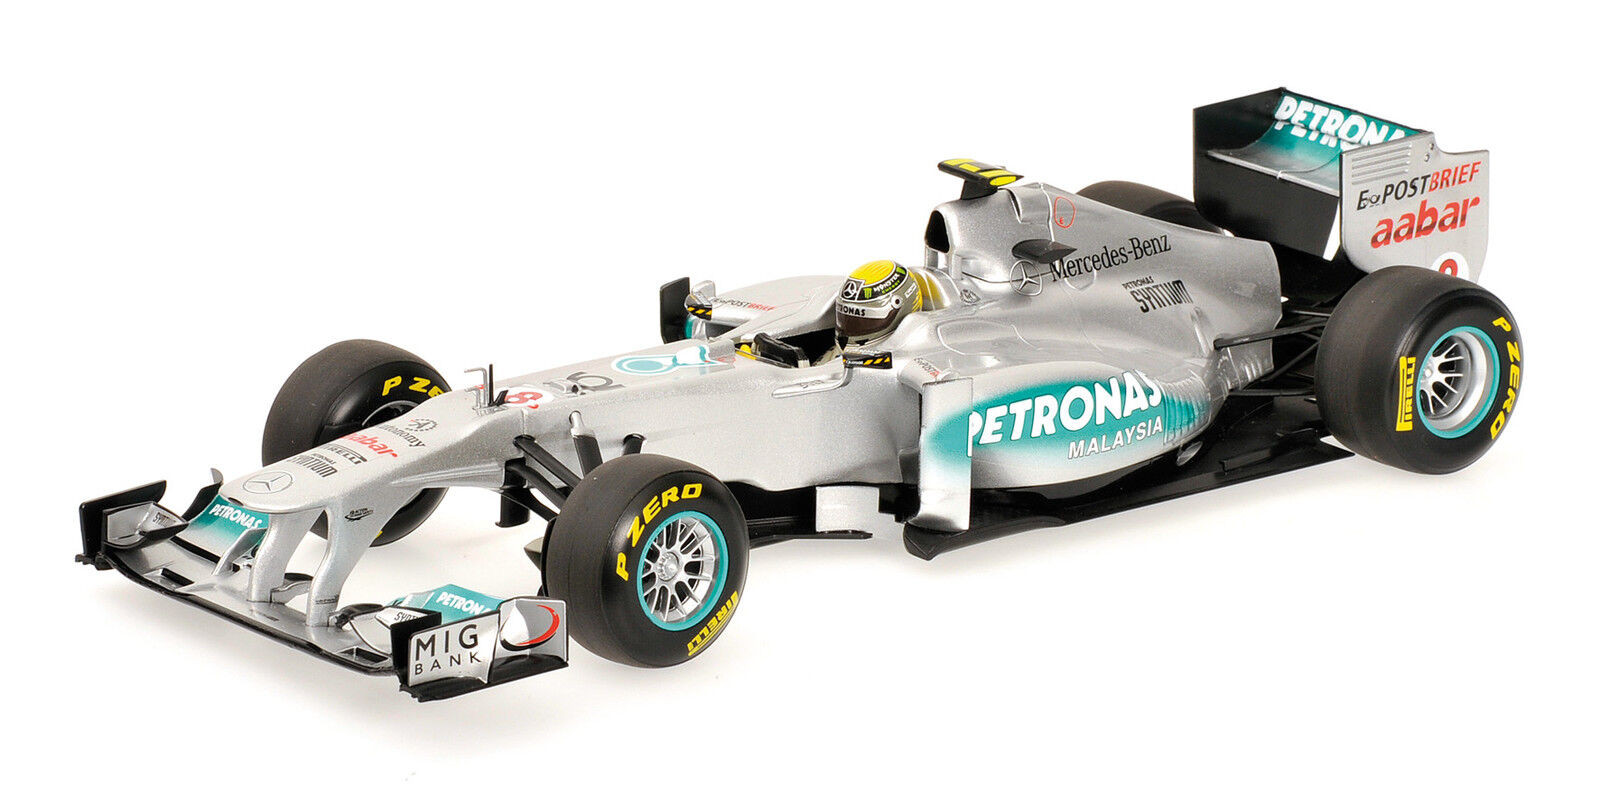 Mercedes gp petronas  f1 team mgp w02 nico rosberg 2011 1 18 model 110110008  commander maintenant les prix les plus bas